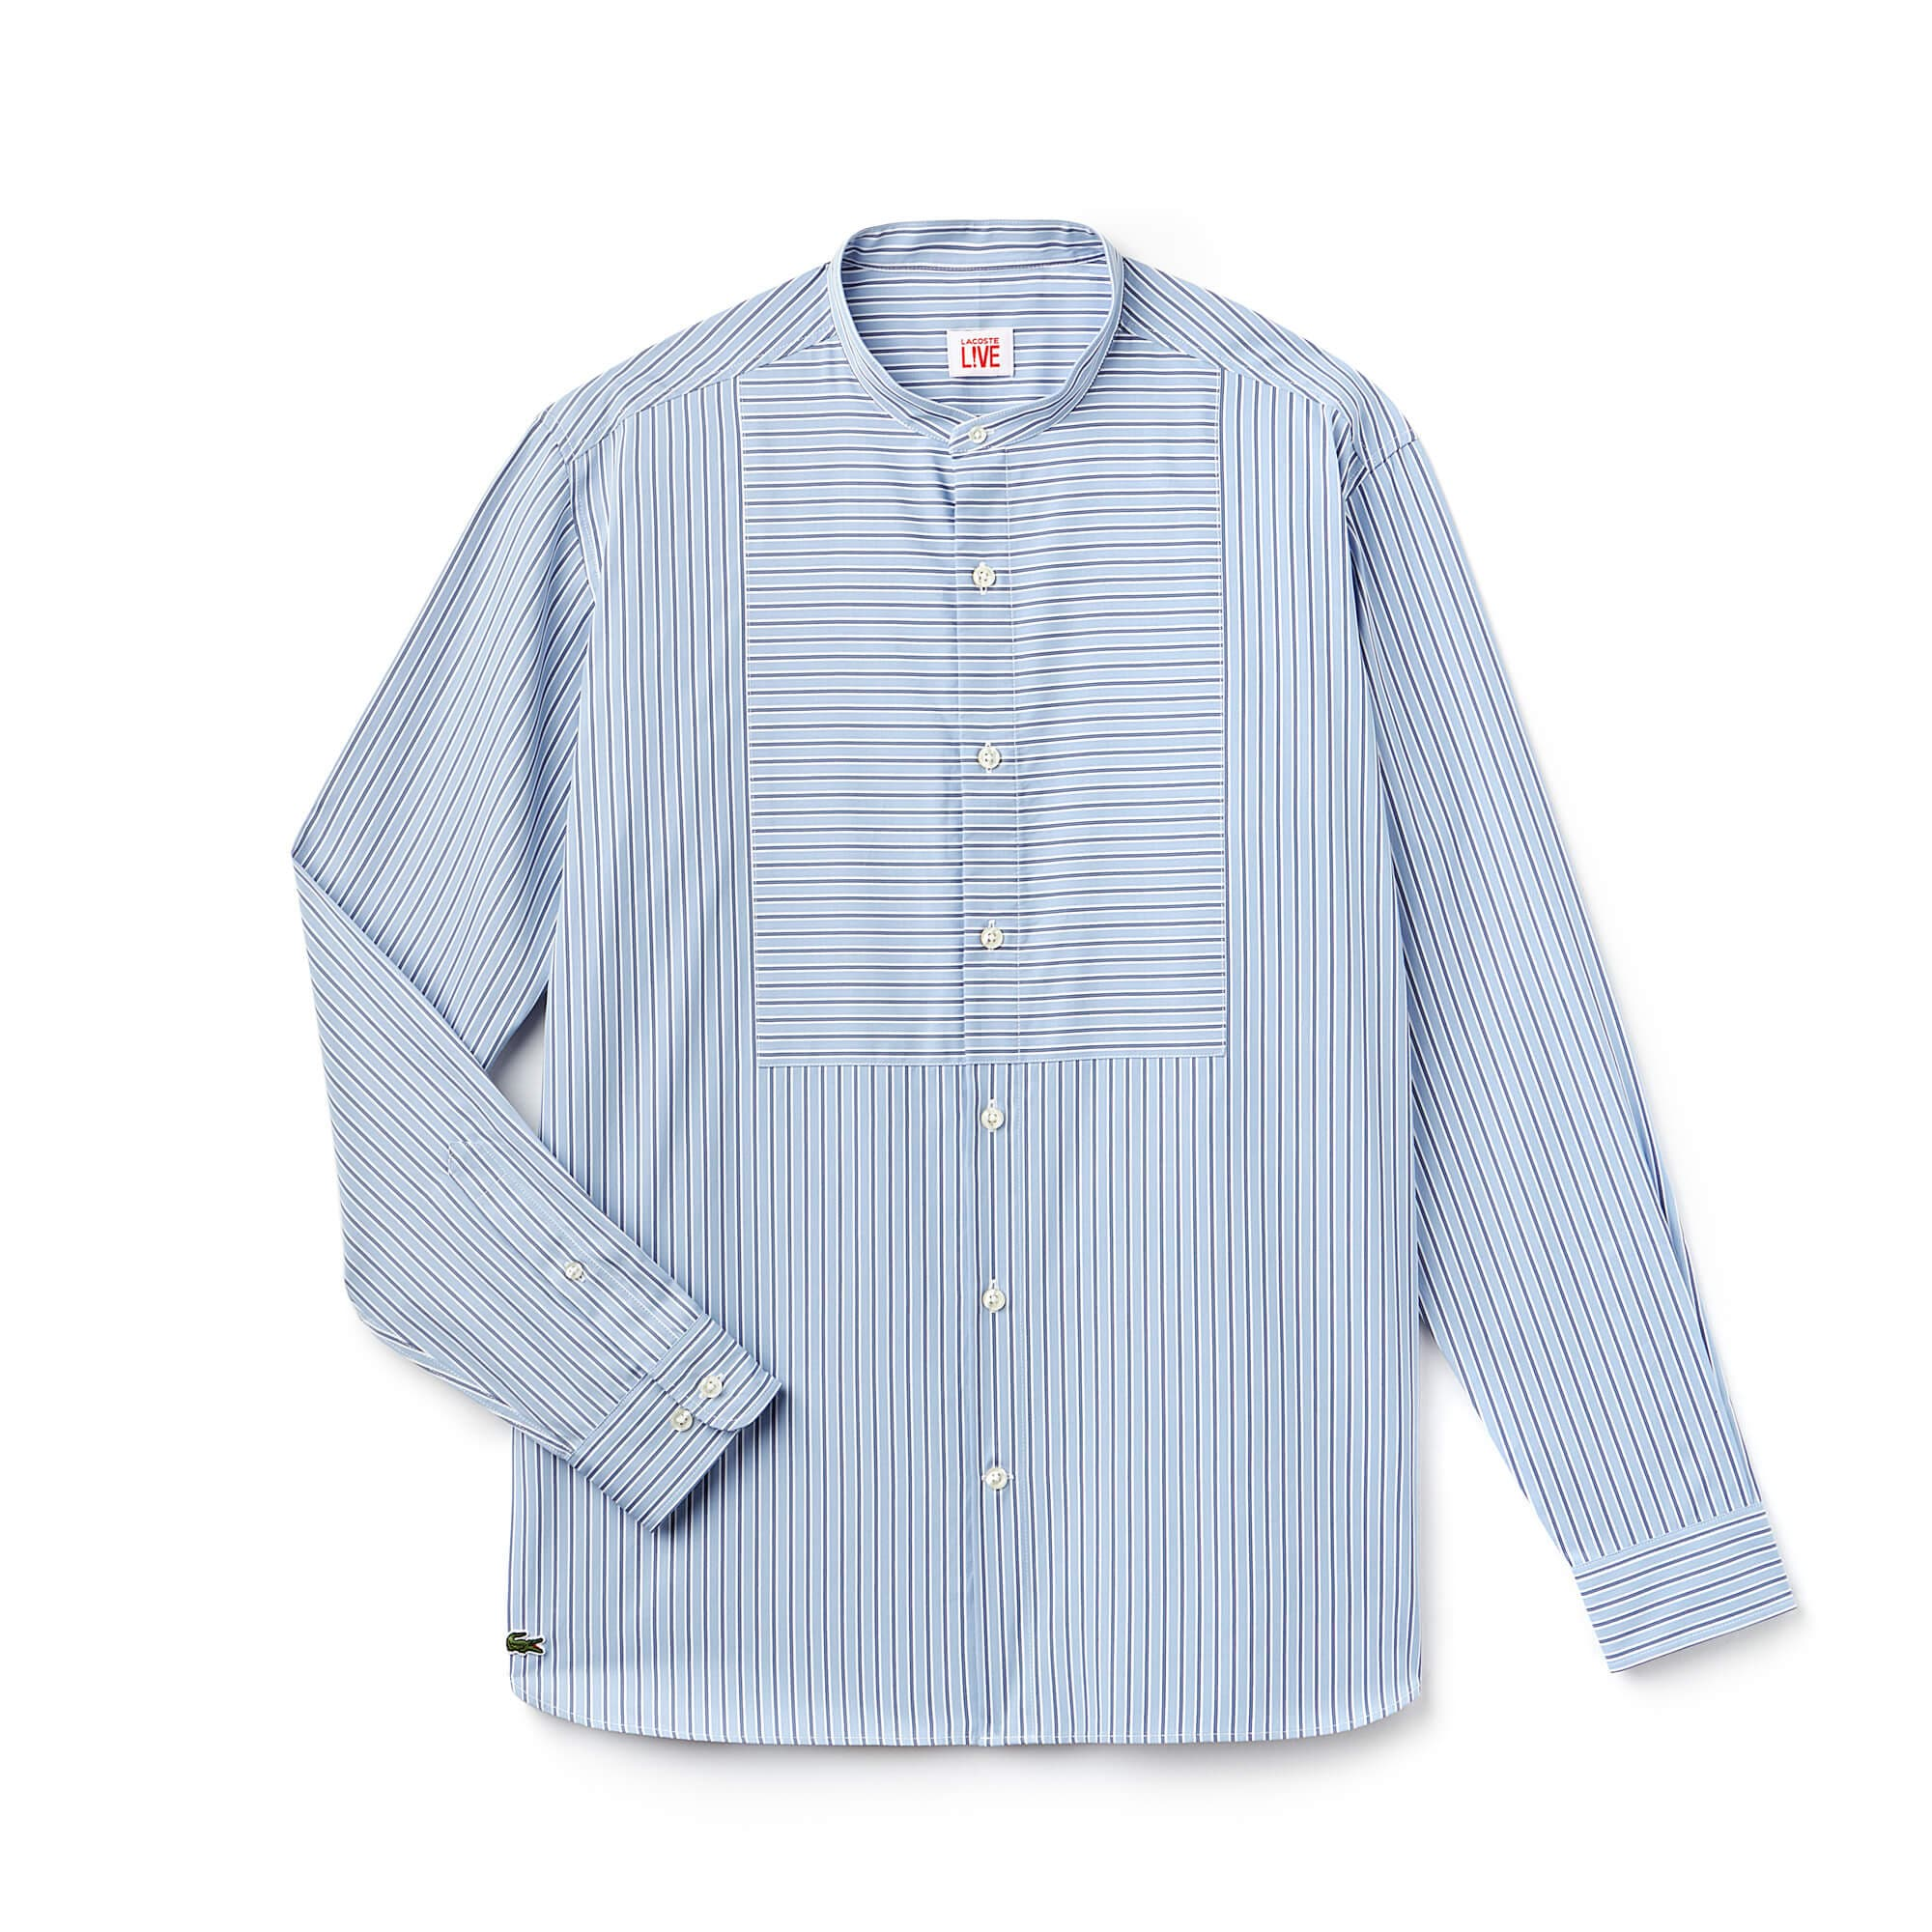 Camisa Hombre Rayas Lacoste Live